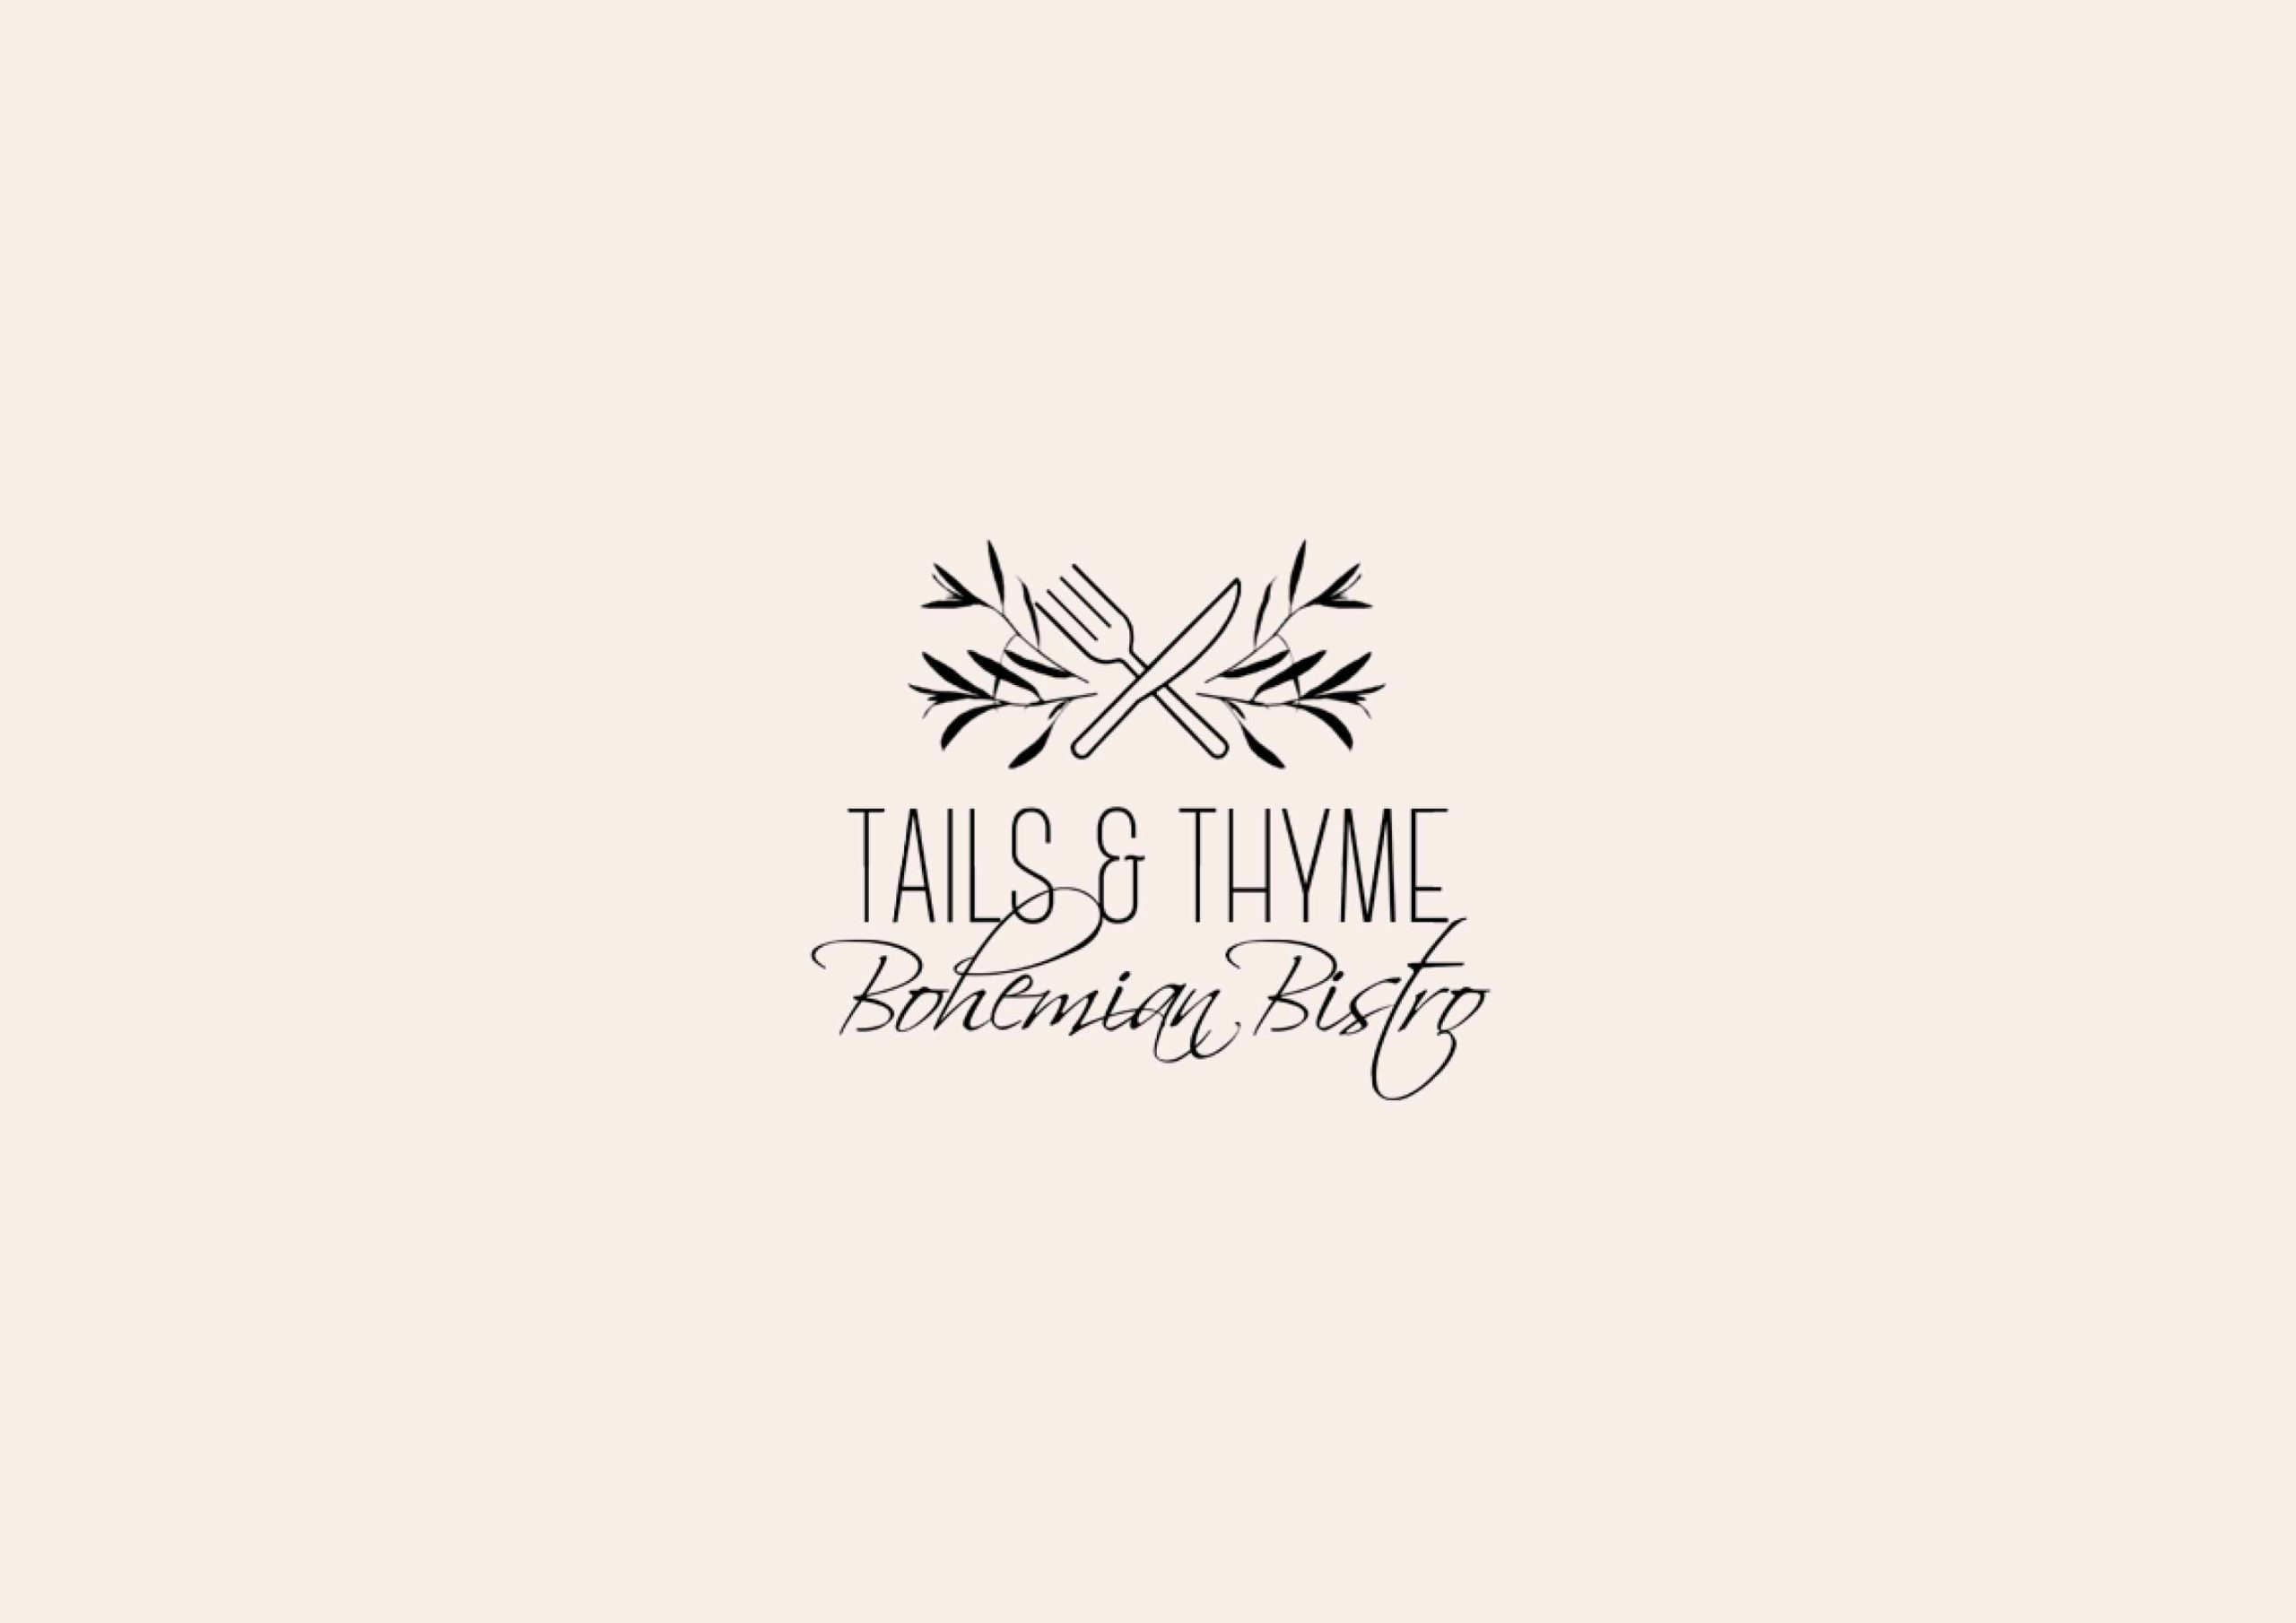 Tails & Thyme